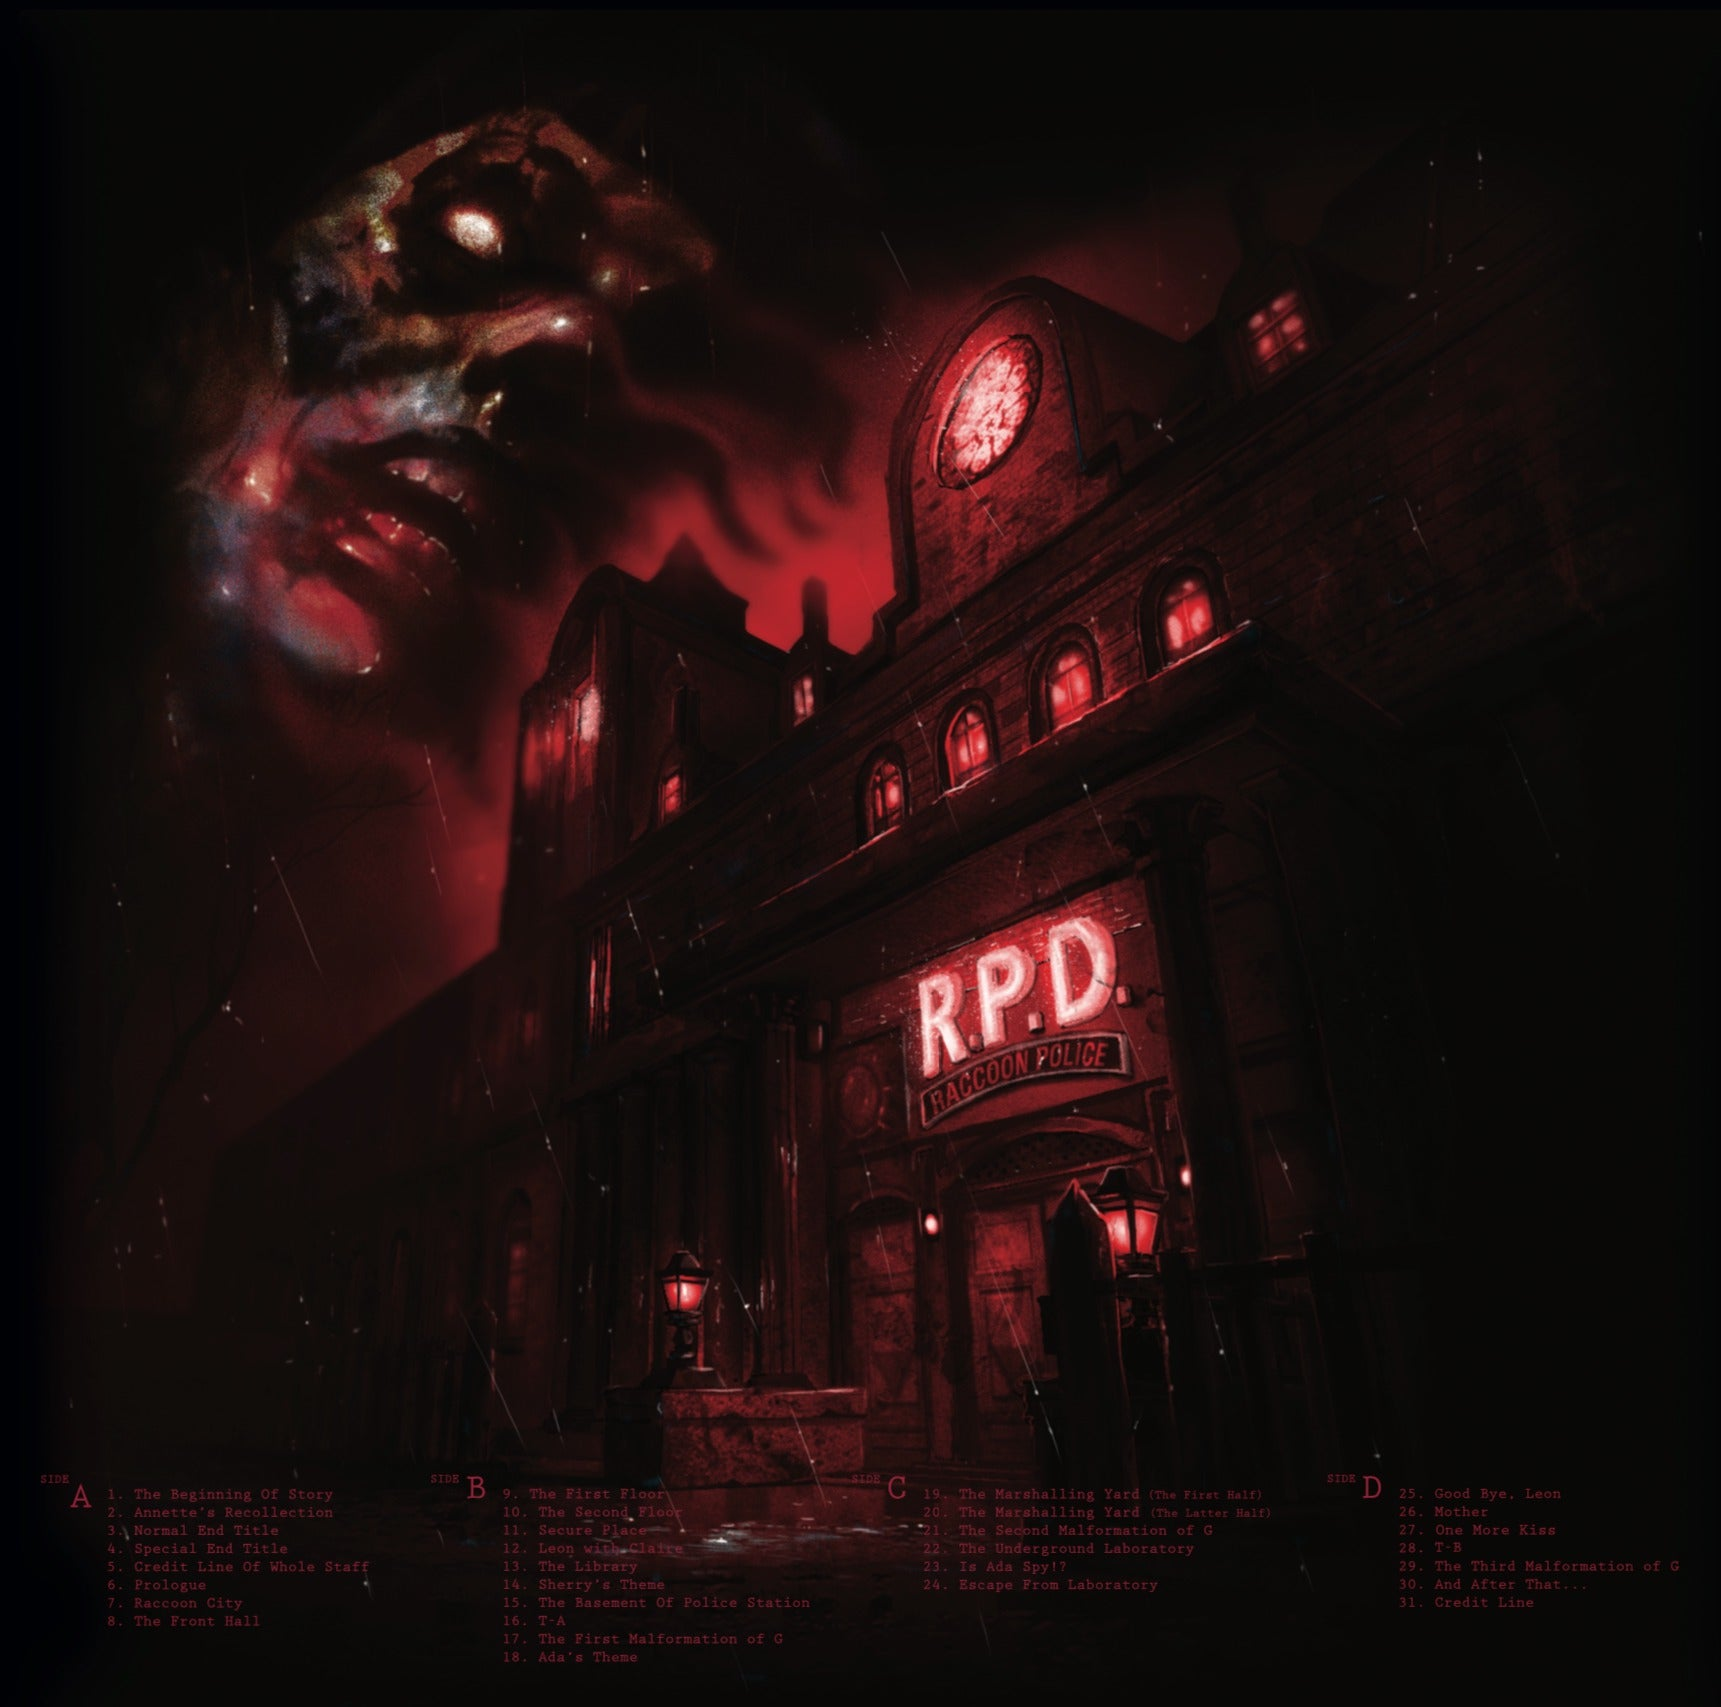 The back cover of the Resident Evil 2 vinyl.